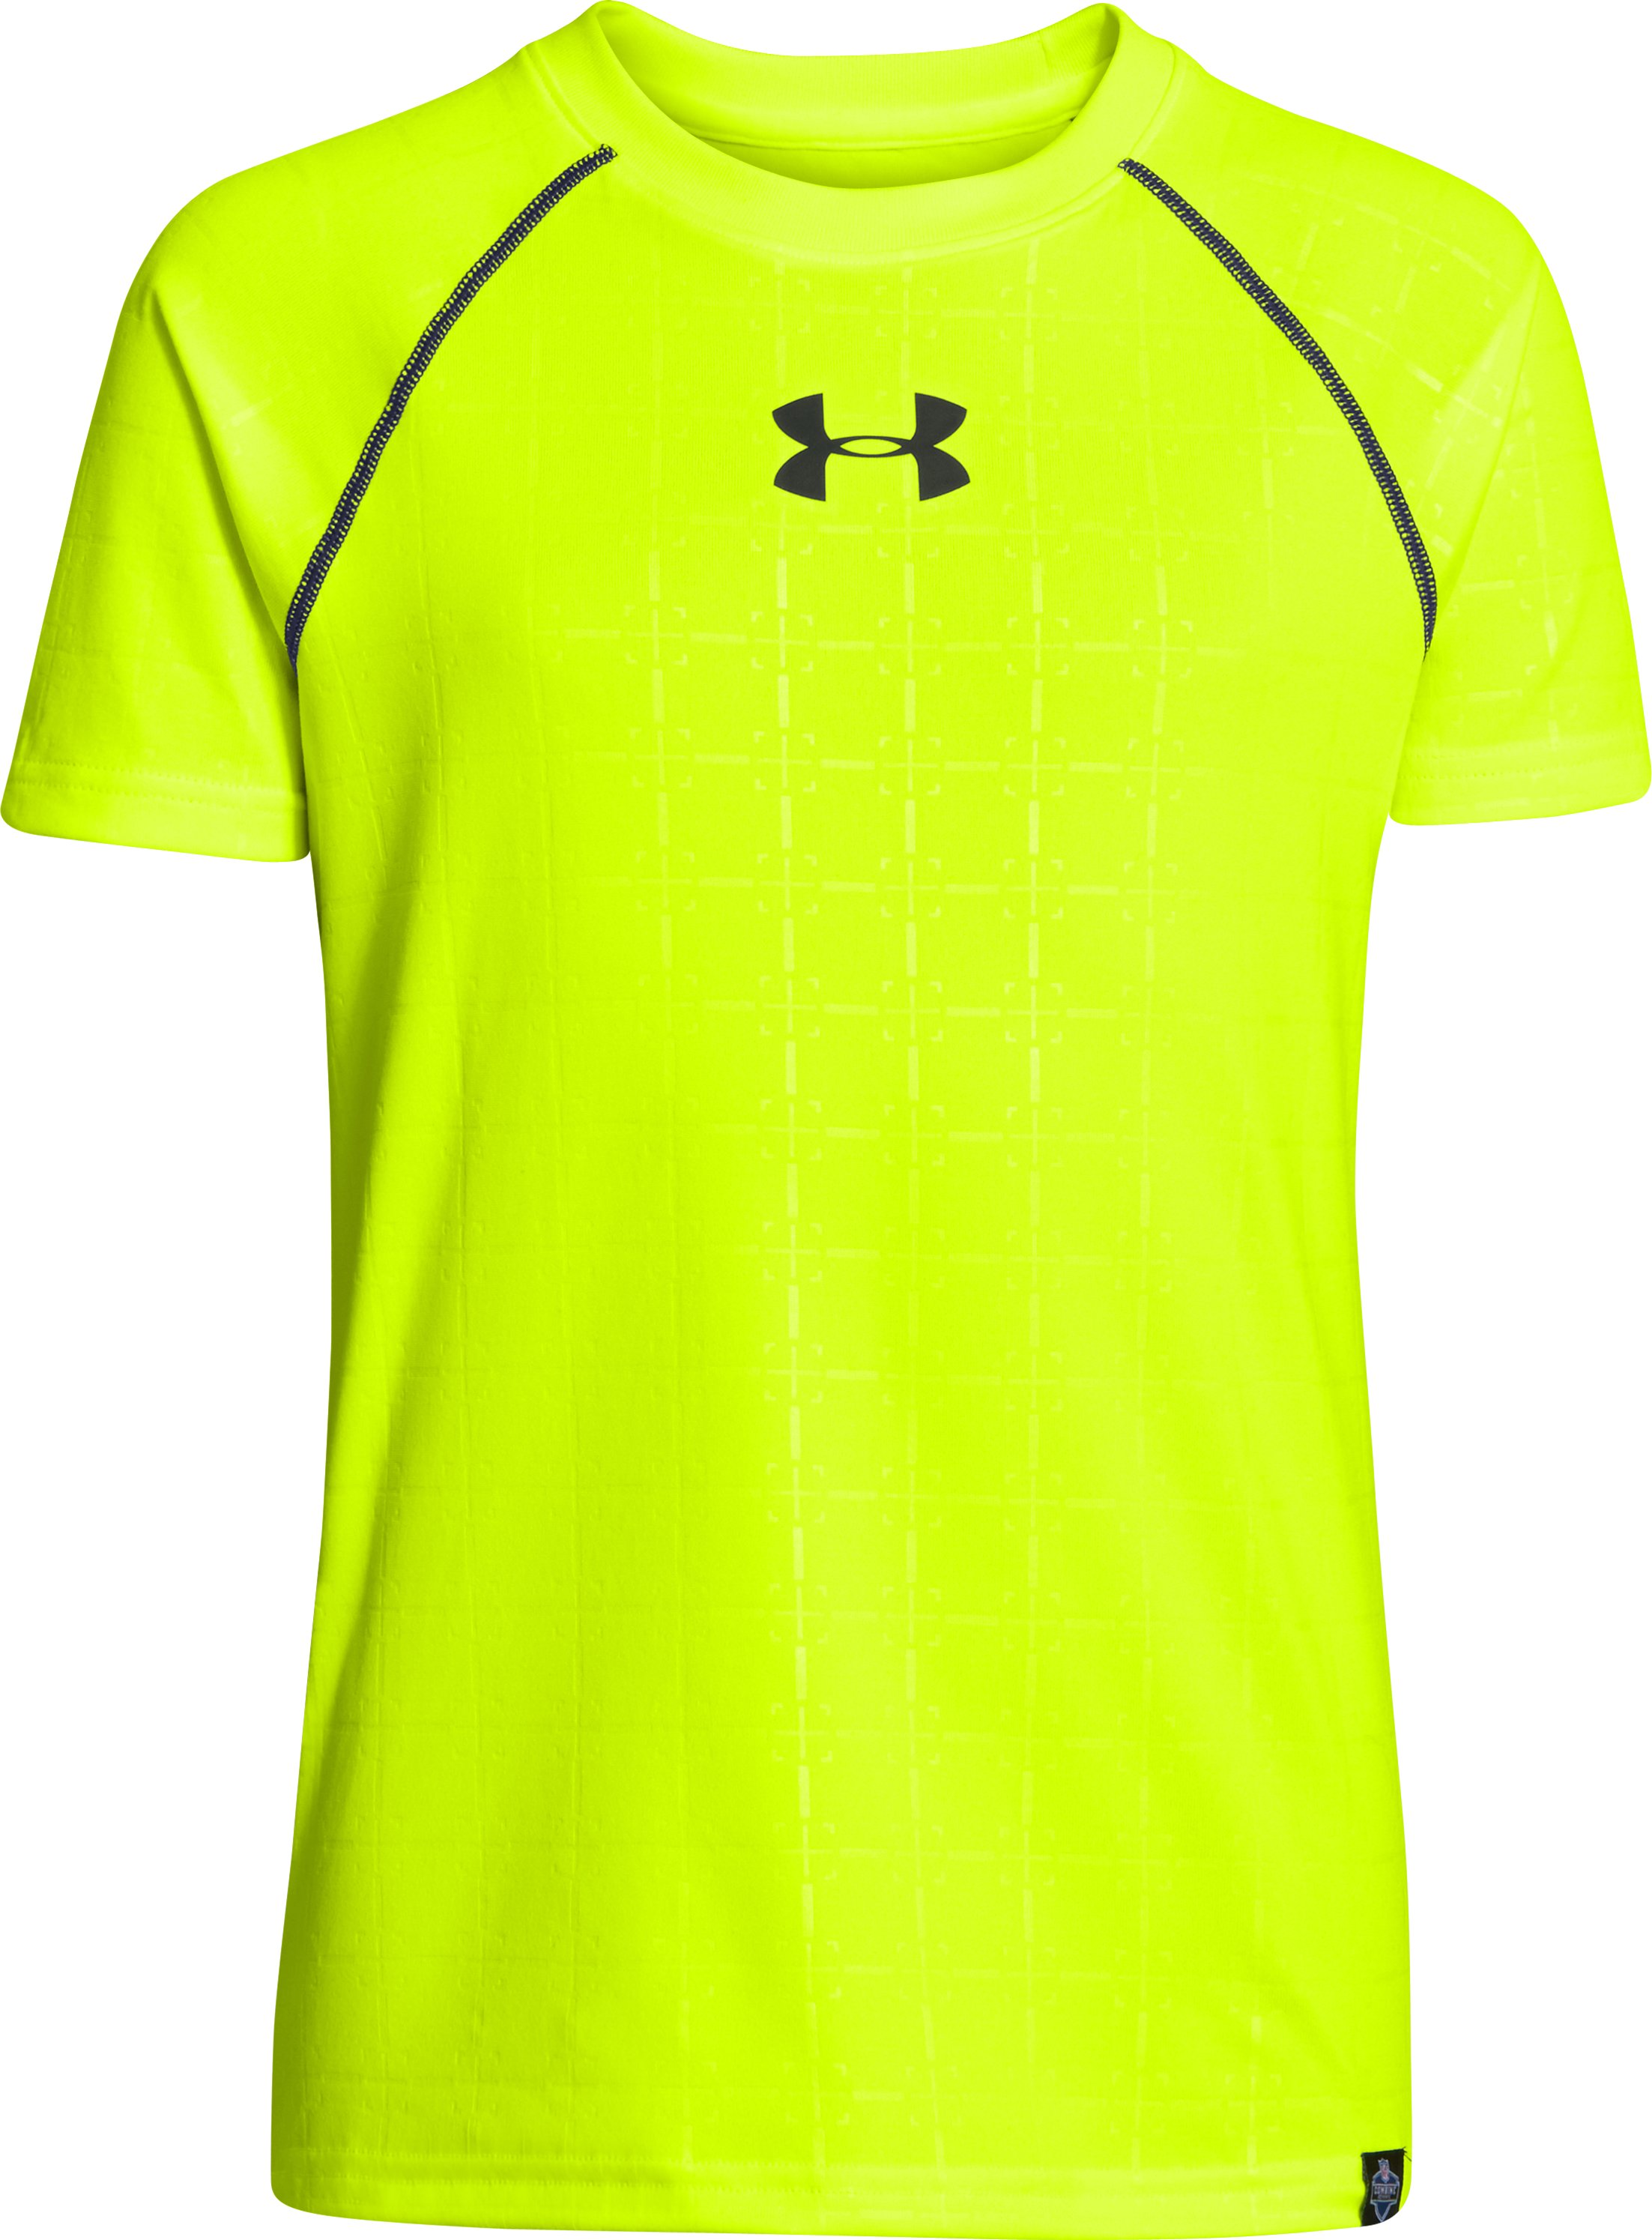 Boys' NFL Combine Authentic Training T-Shirt, High-Vis Yellow